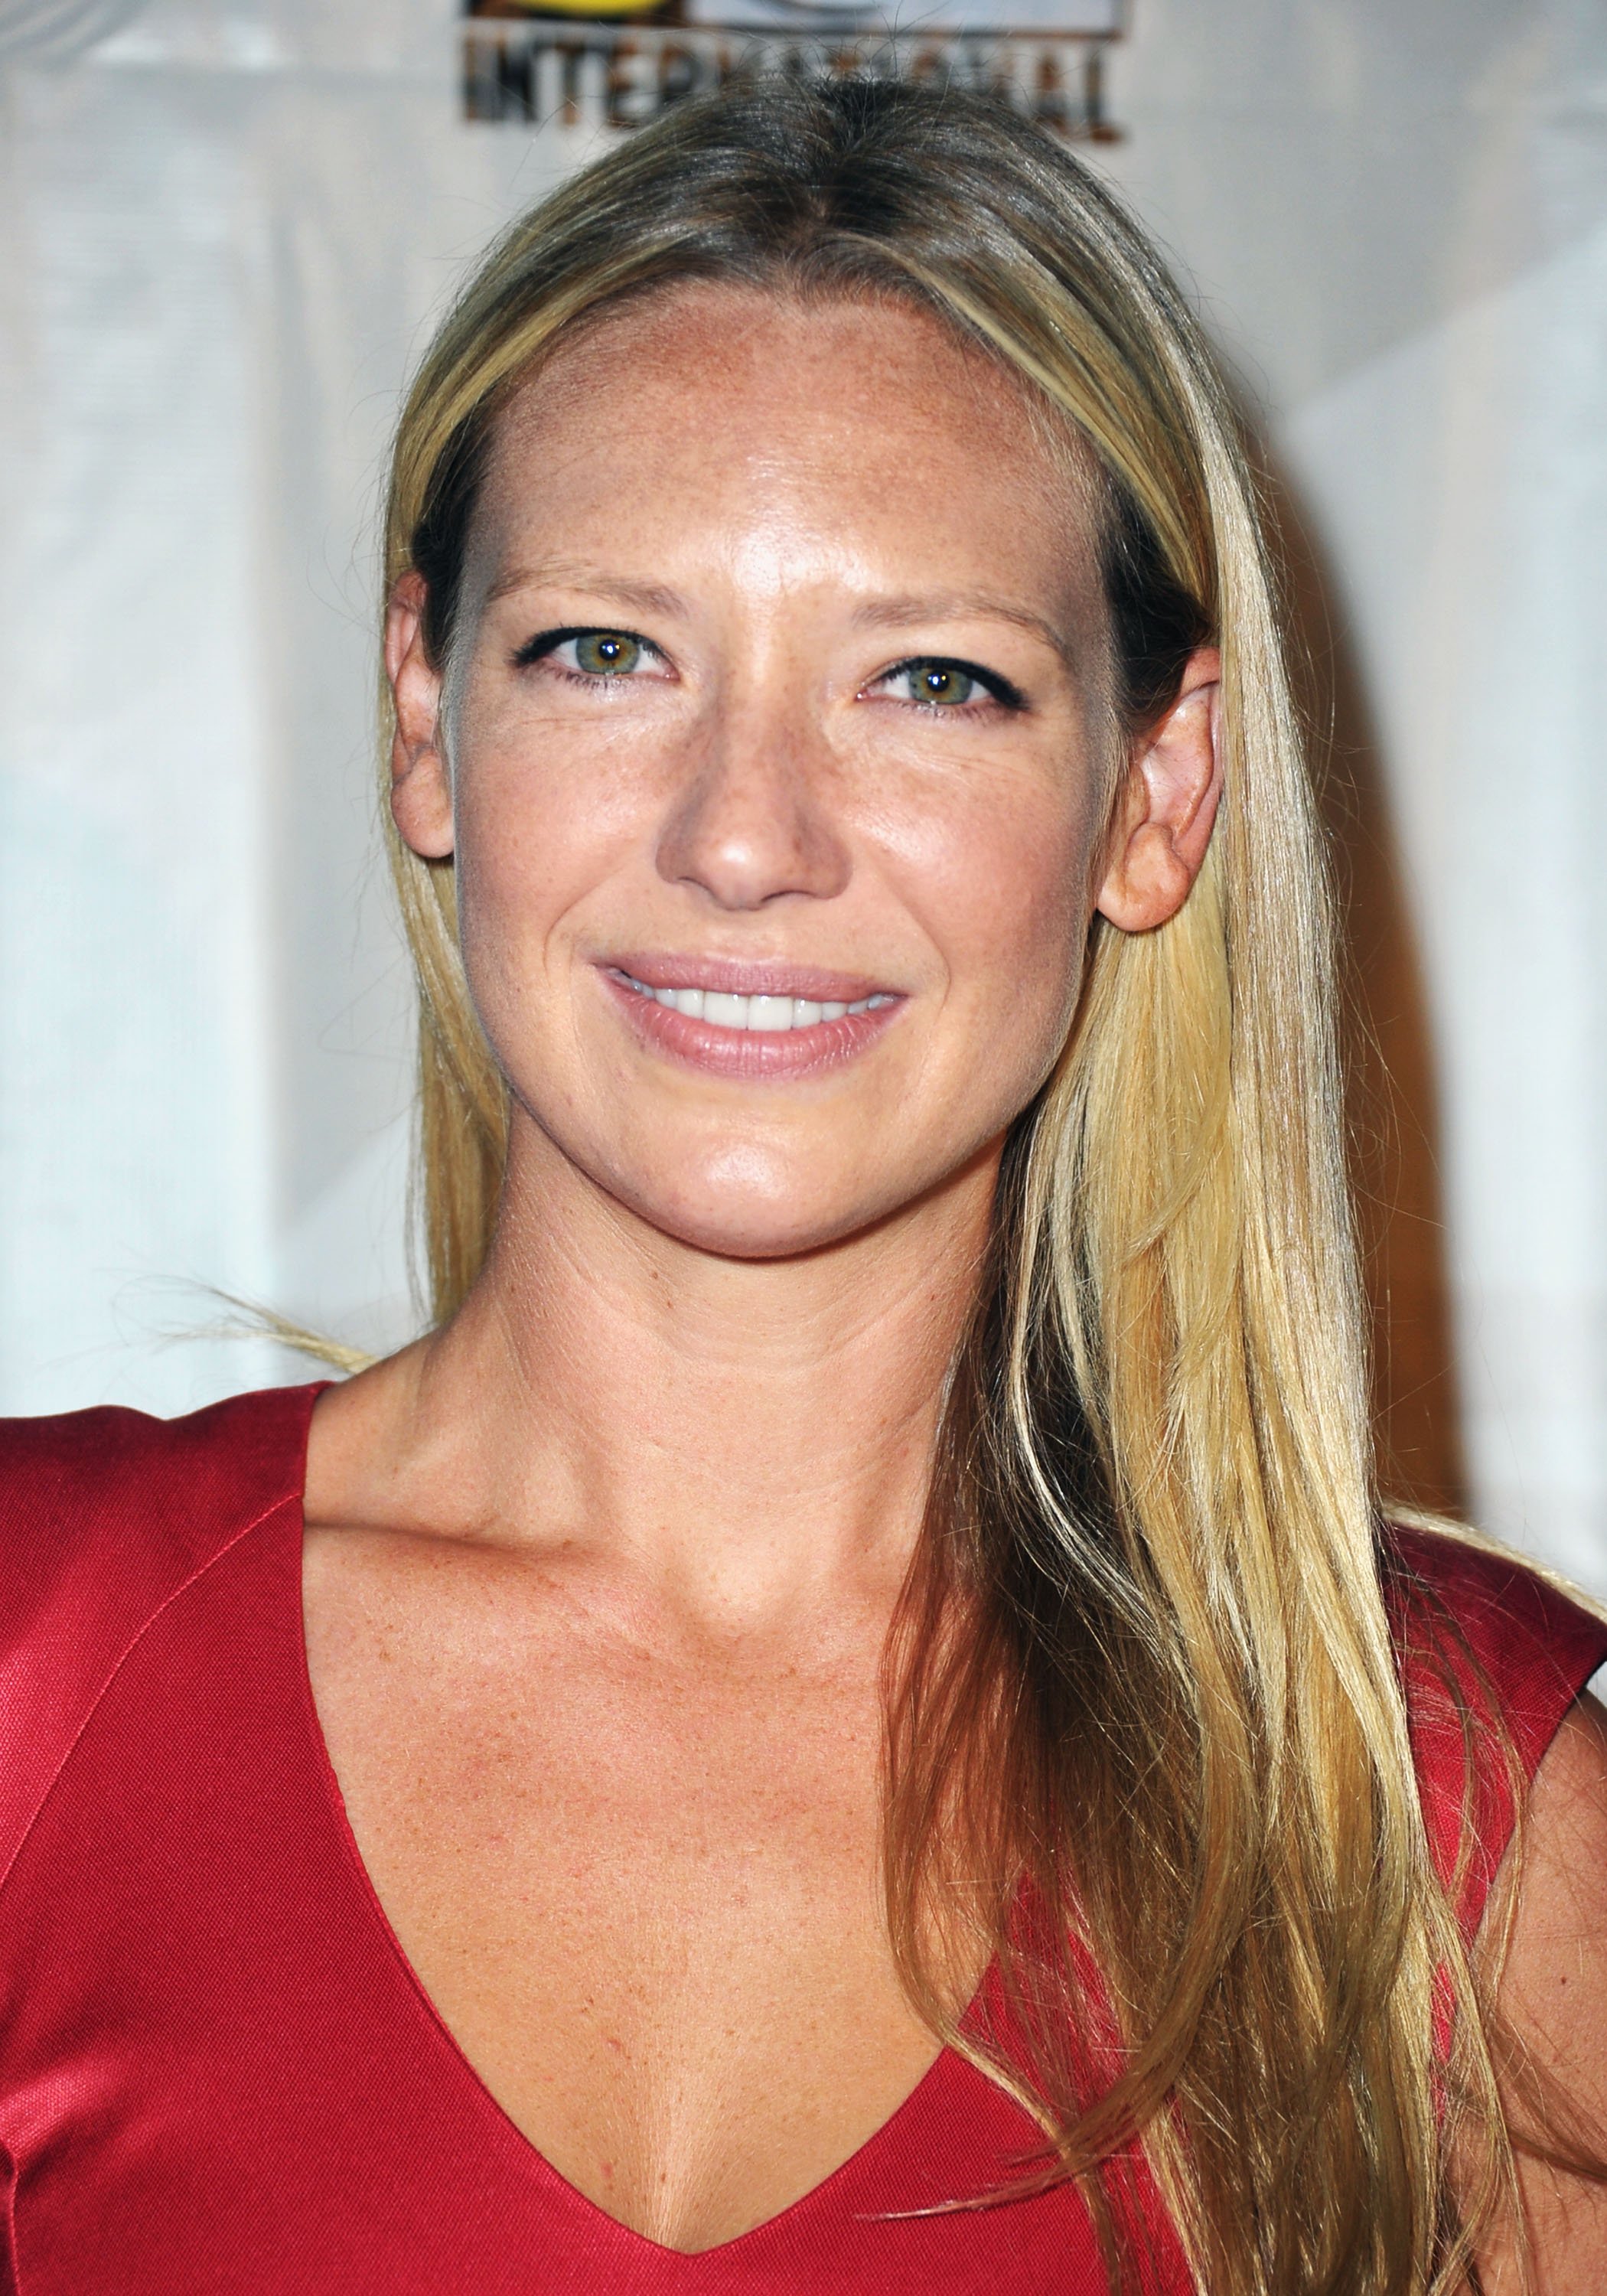 Anna Torvs Leaked Cell Phone Pictures